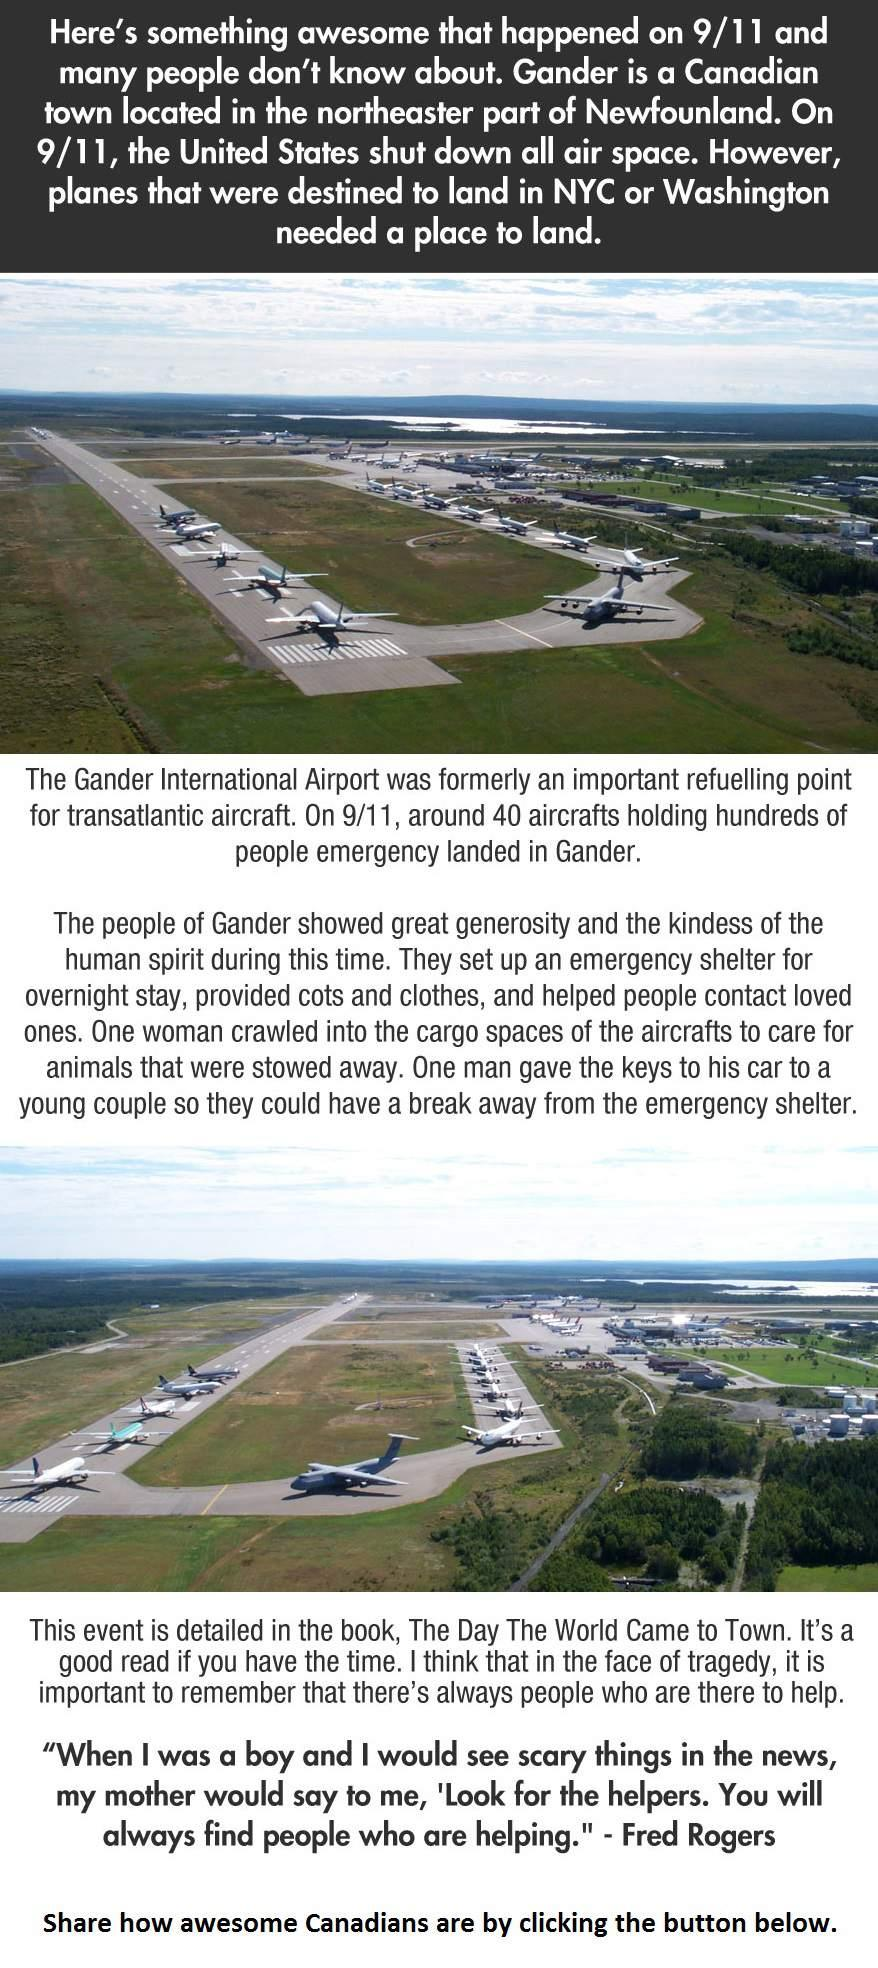 many people don't know this actually happened, september 11th 2001, 911, canadian generosity